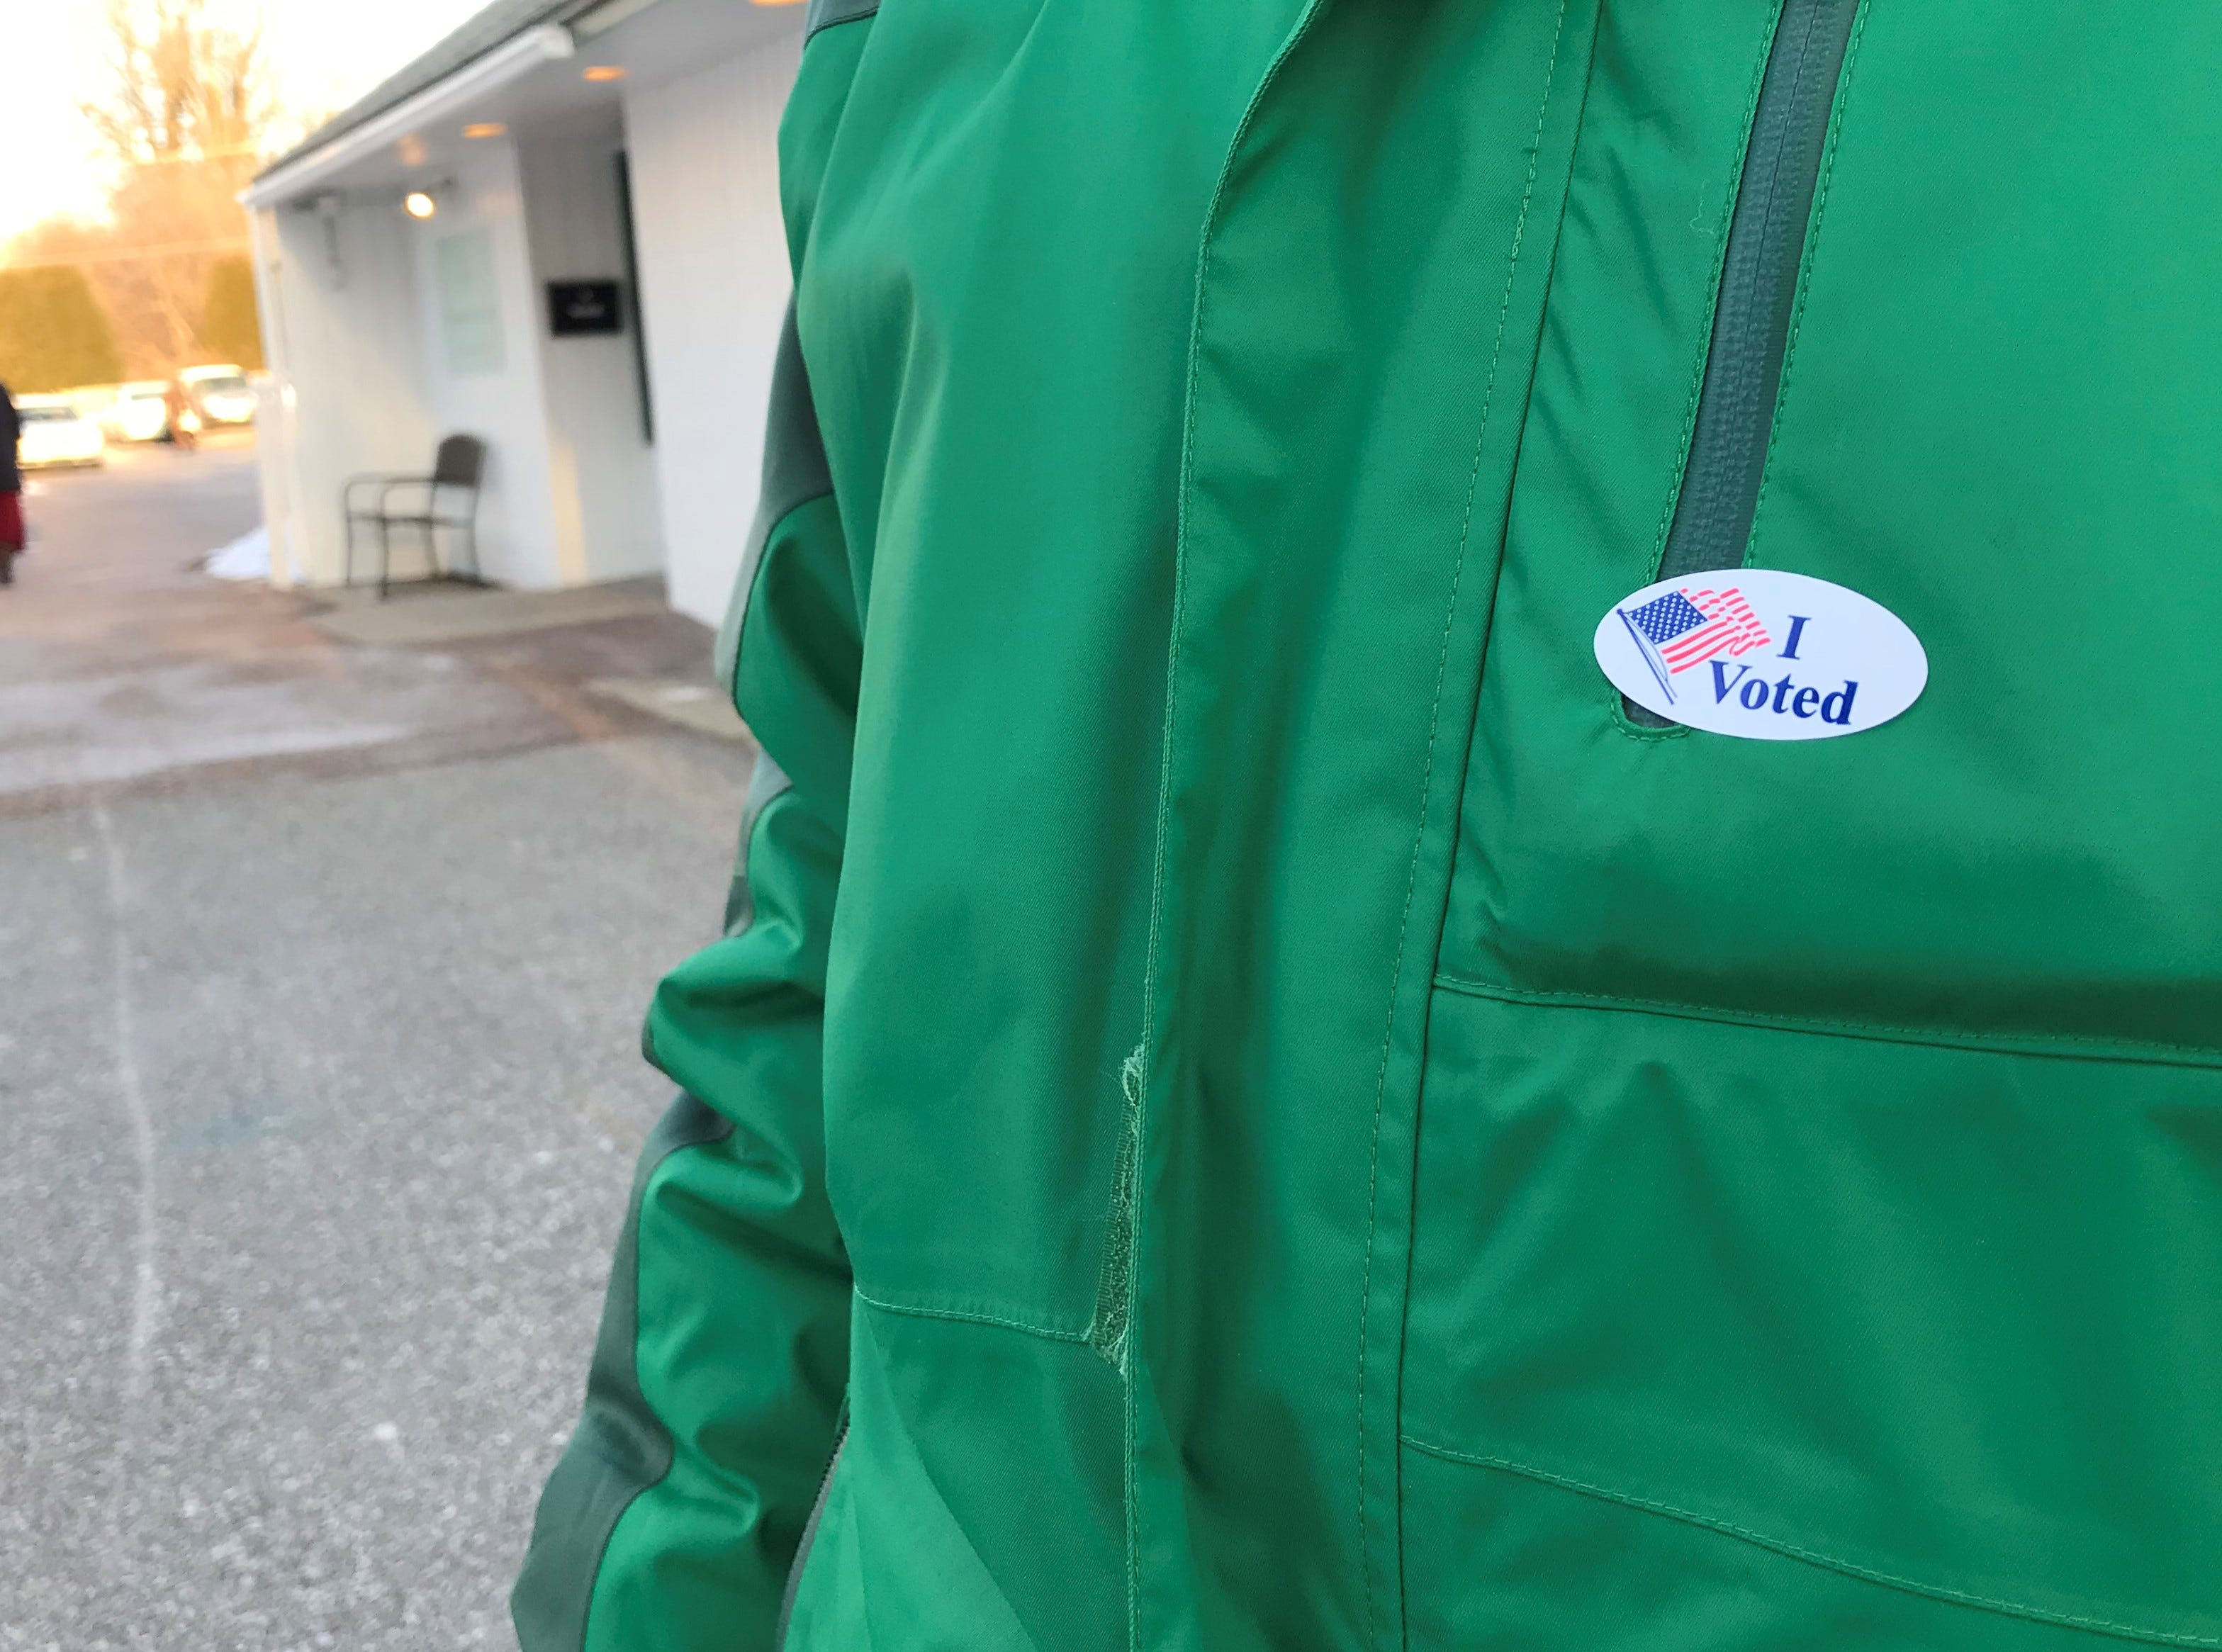 """Alana Shaw put her """"I voted"""" sticker on after stepping out of the polls at the Winooski Senior Center on Town Meeting Day, March 5, 2019."""